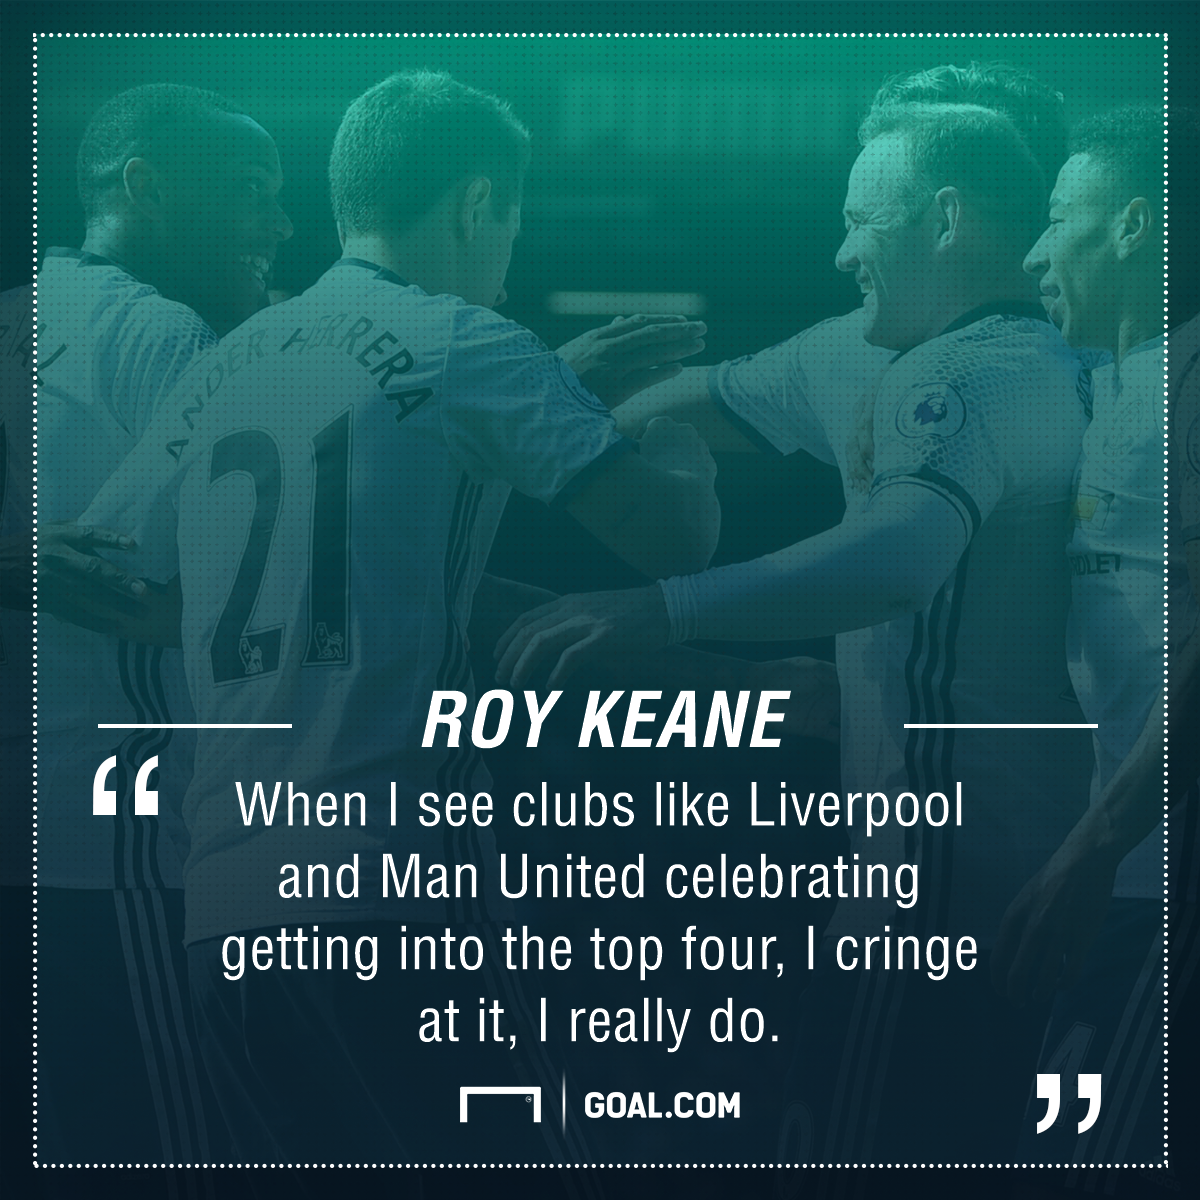 Shame On You Roy Keane Blasts Manchester United And Liverpool For Celebrating Top Four Finishes Goal Com